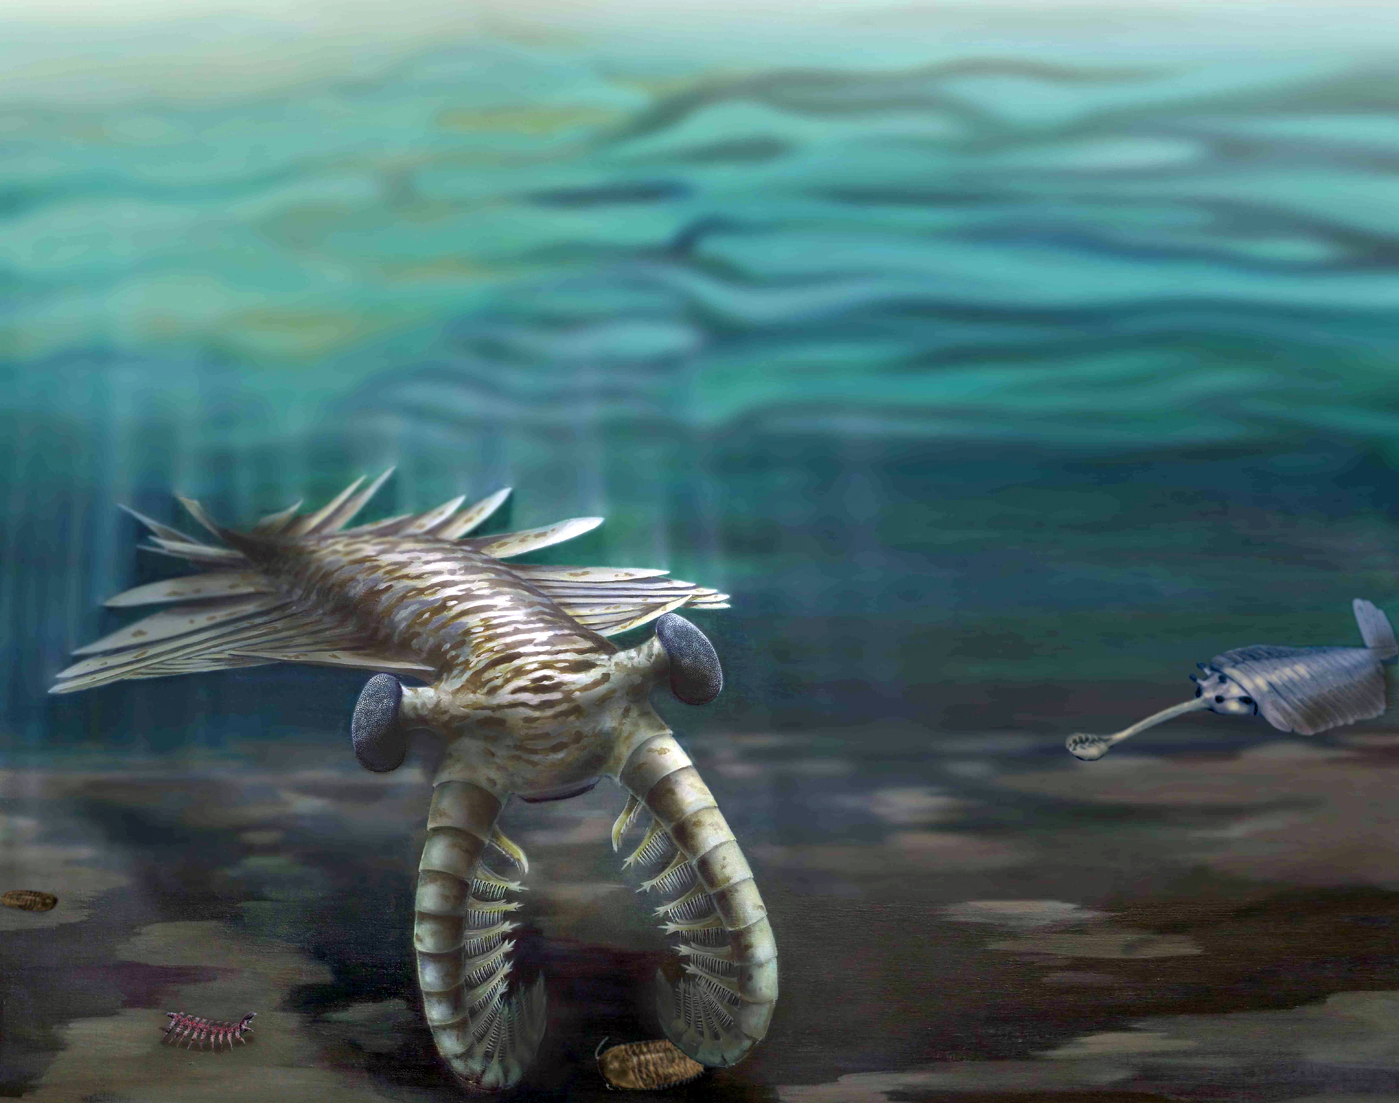 Clocking the Cambrian